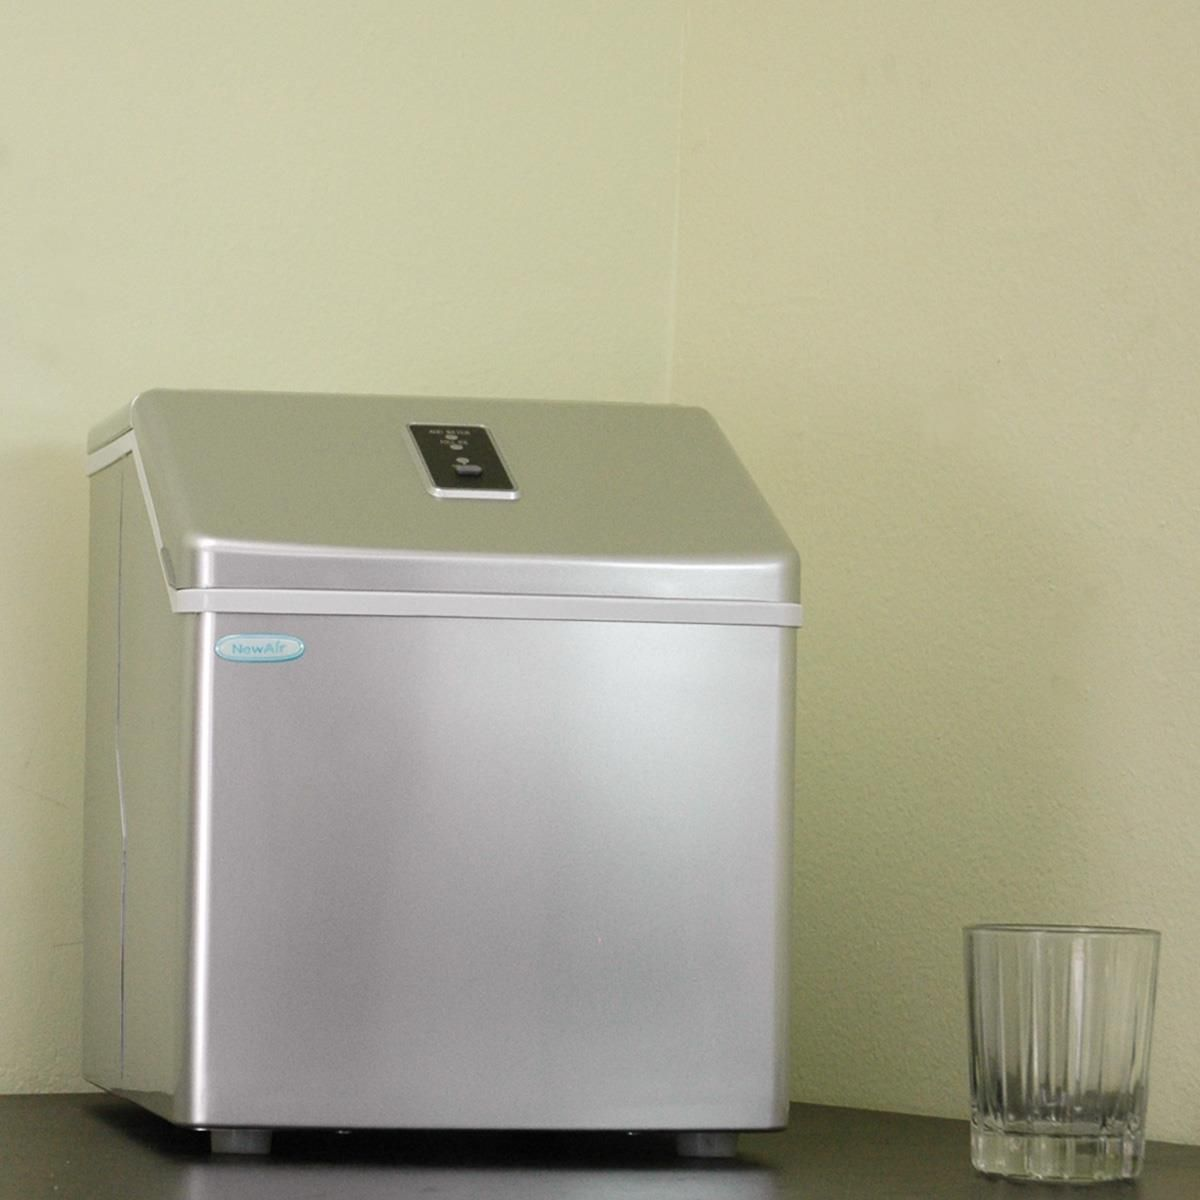 Newair Ai 130s Portable Clear Ice Maker Clear Ice Ice Maker Maker